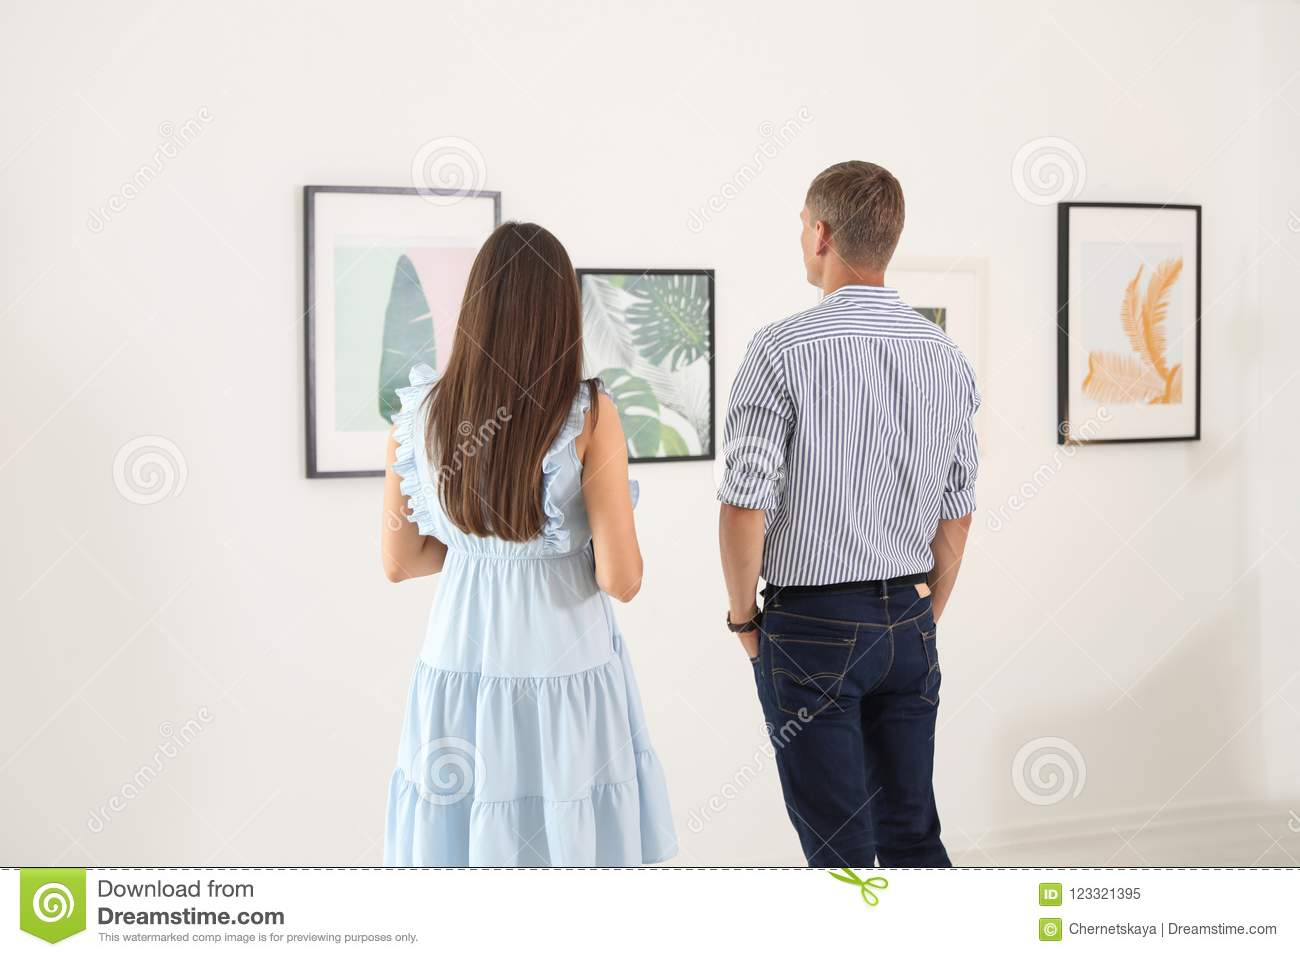 Young couple at exhibition